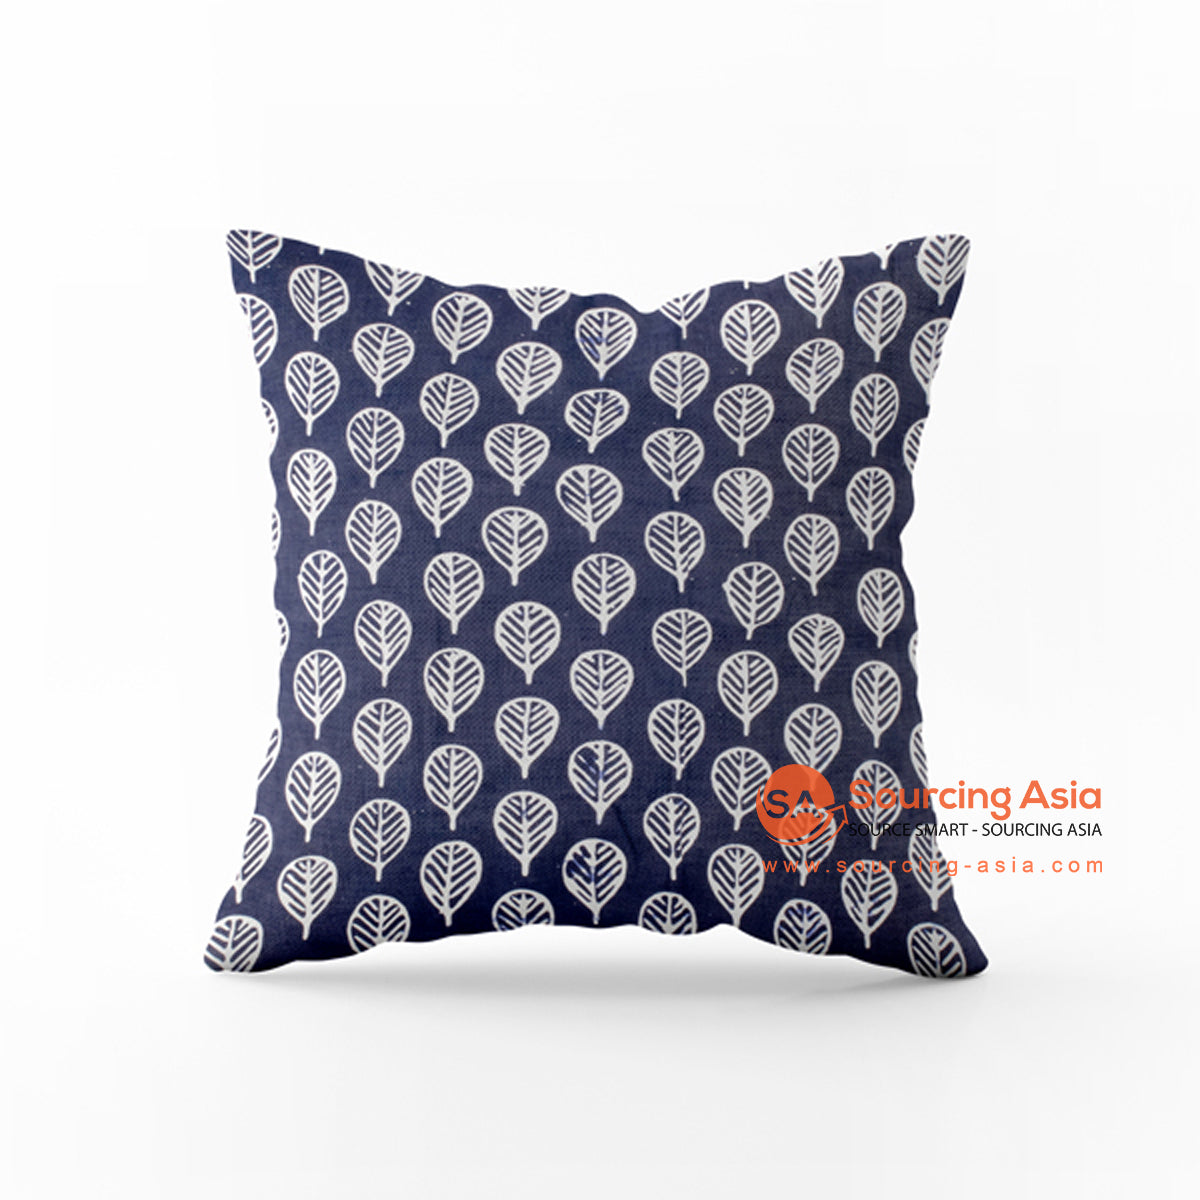 SHL165-14 BATIK STAMP CUSHION COVER